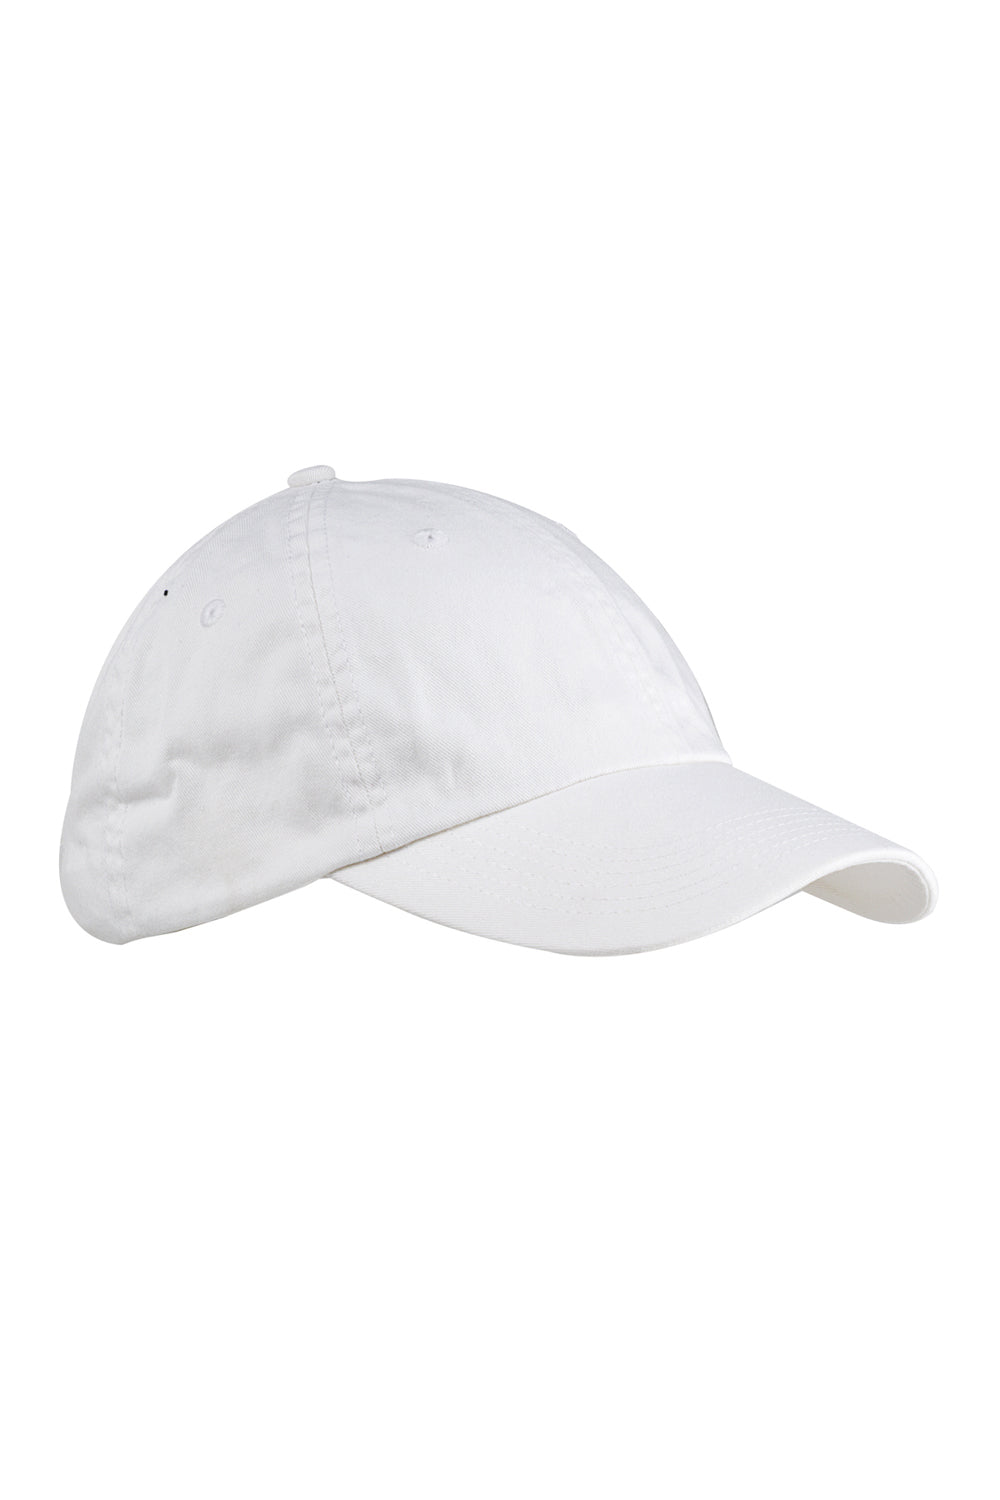 Big Accessories BX005 Mens Adjustable Hat White Front